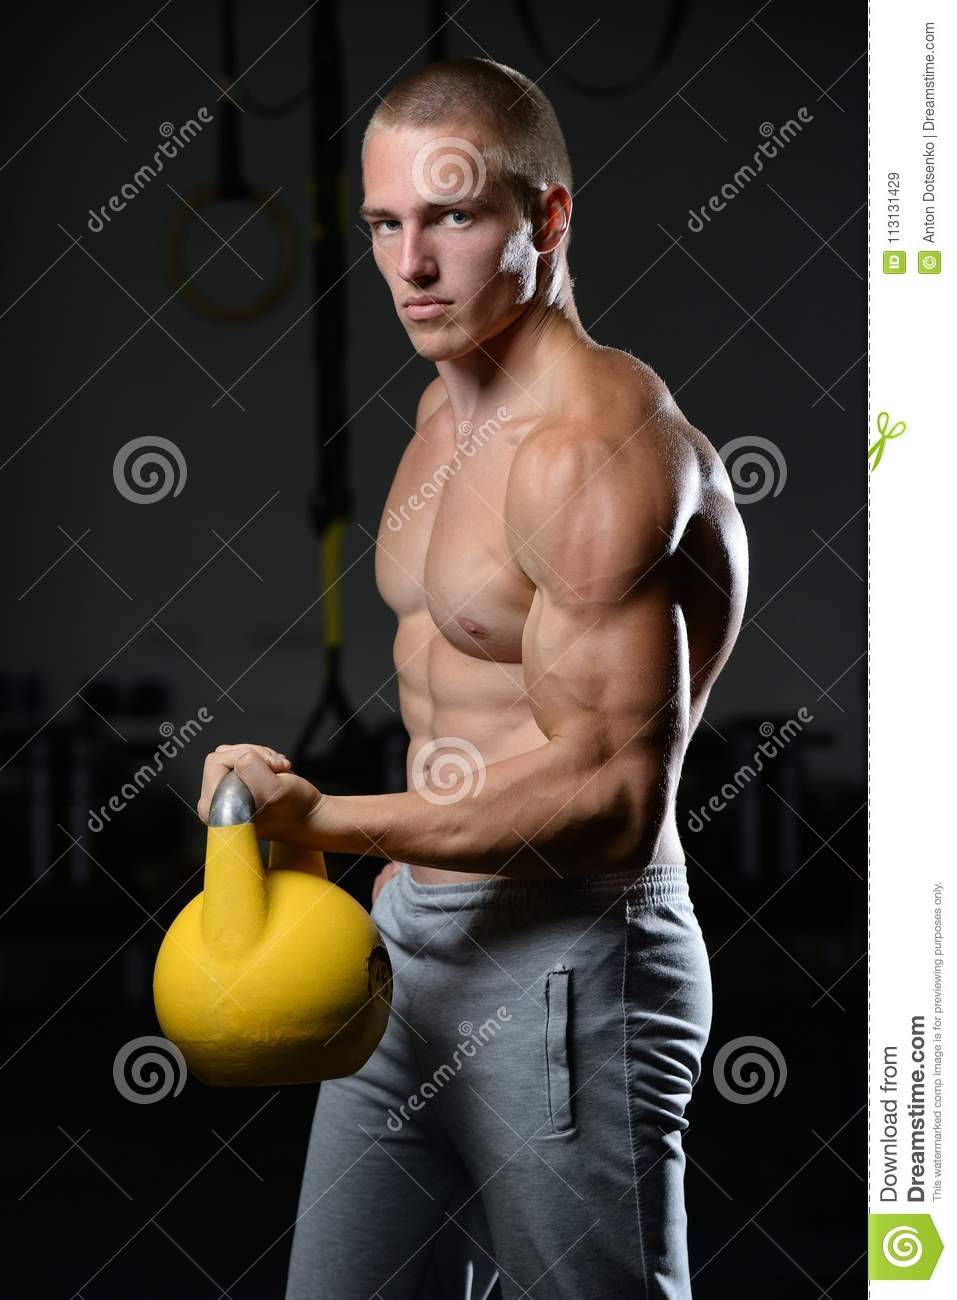 Kettlebell Bodybuilding Handsome Young Man Working Out In Gym Kettlebell Stock Image